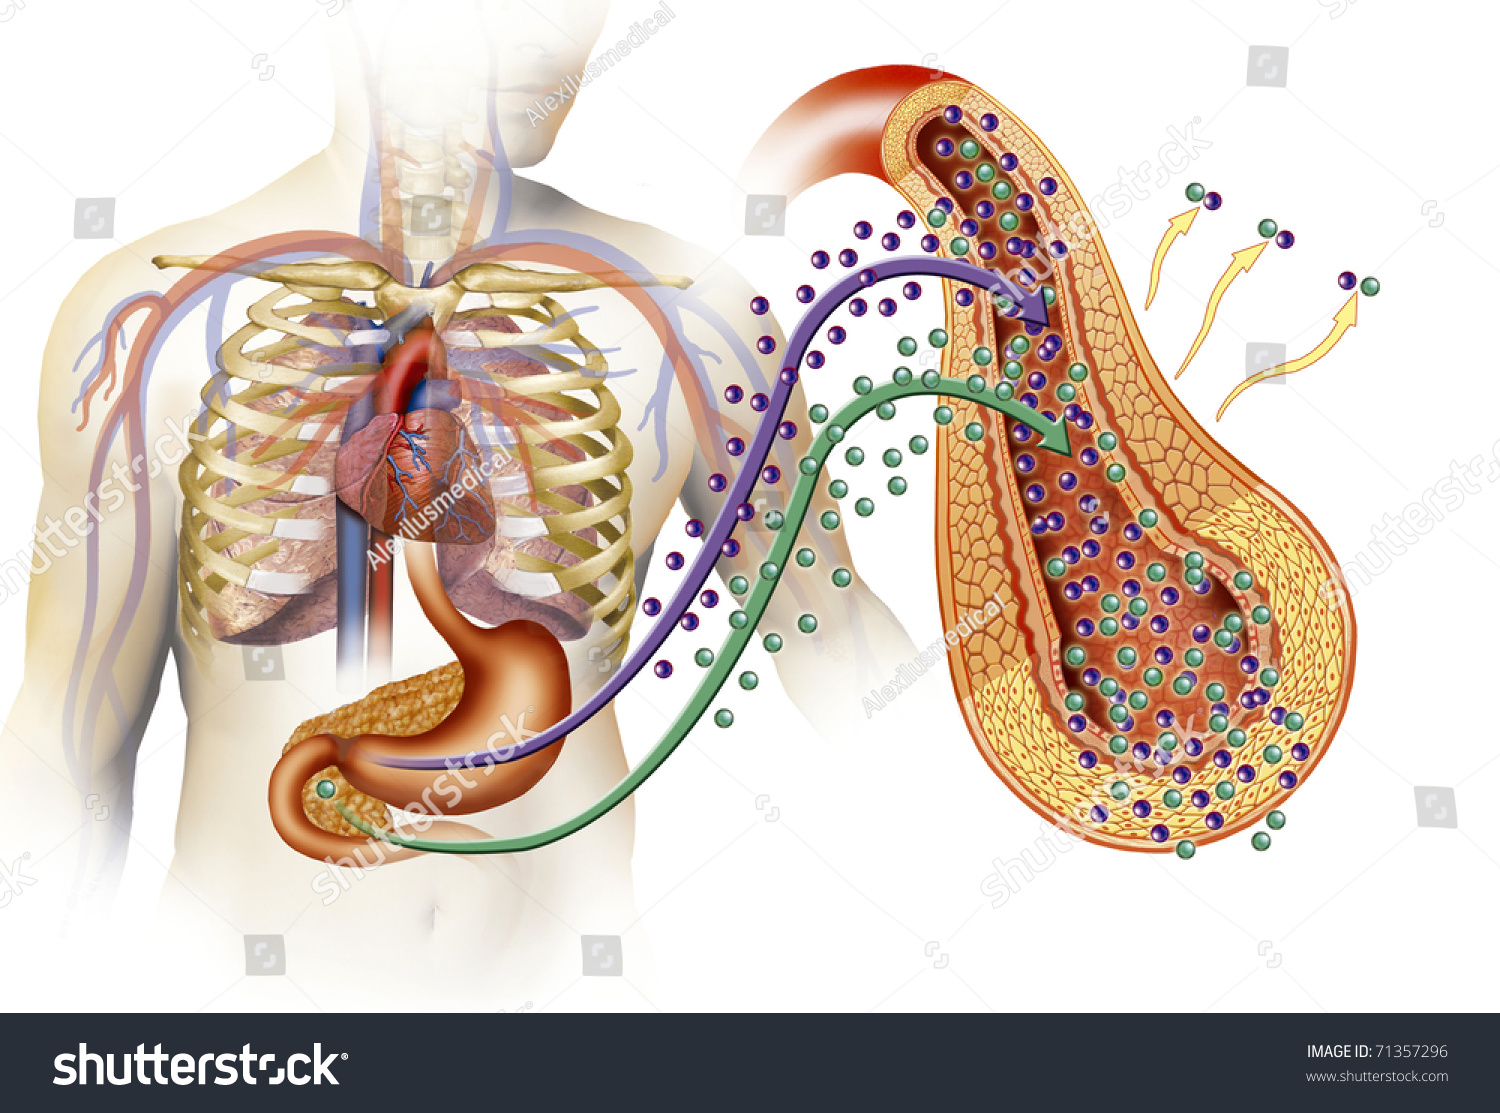 Anatomical Illustration Types Diabetes Stock Illustration 71357296 ...